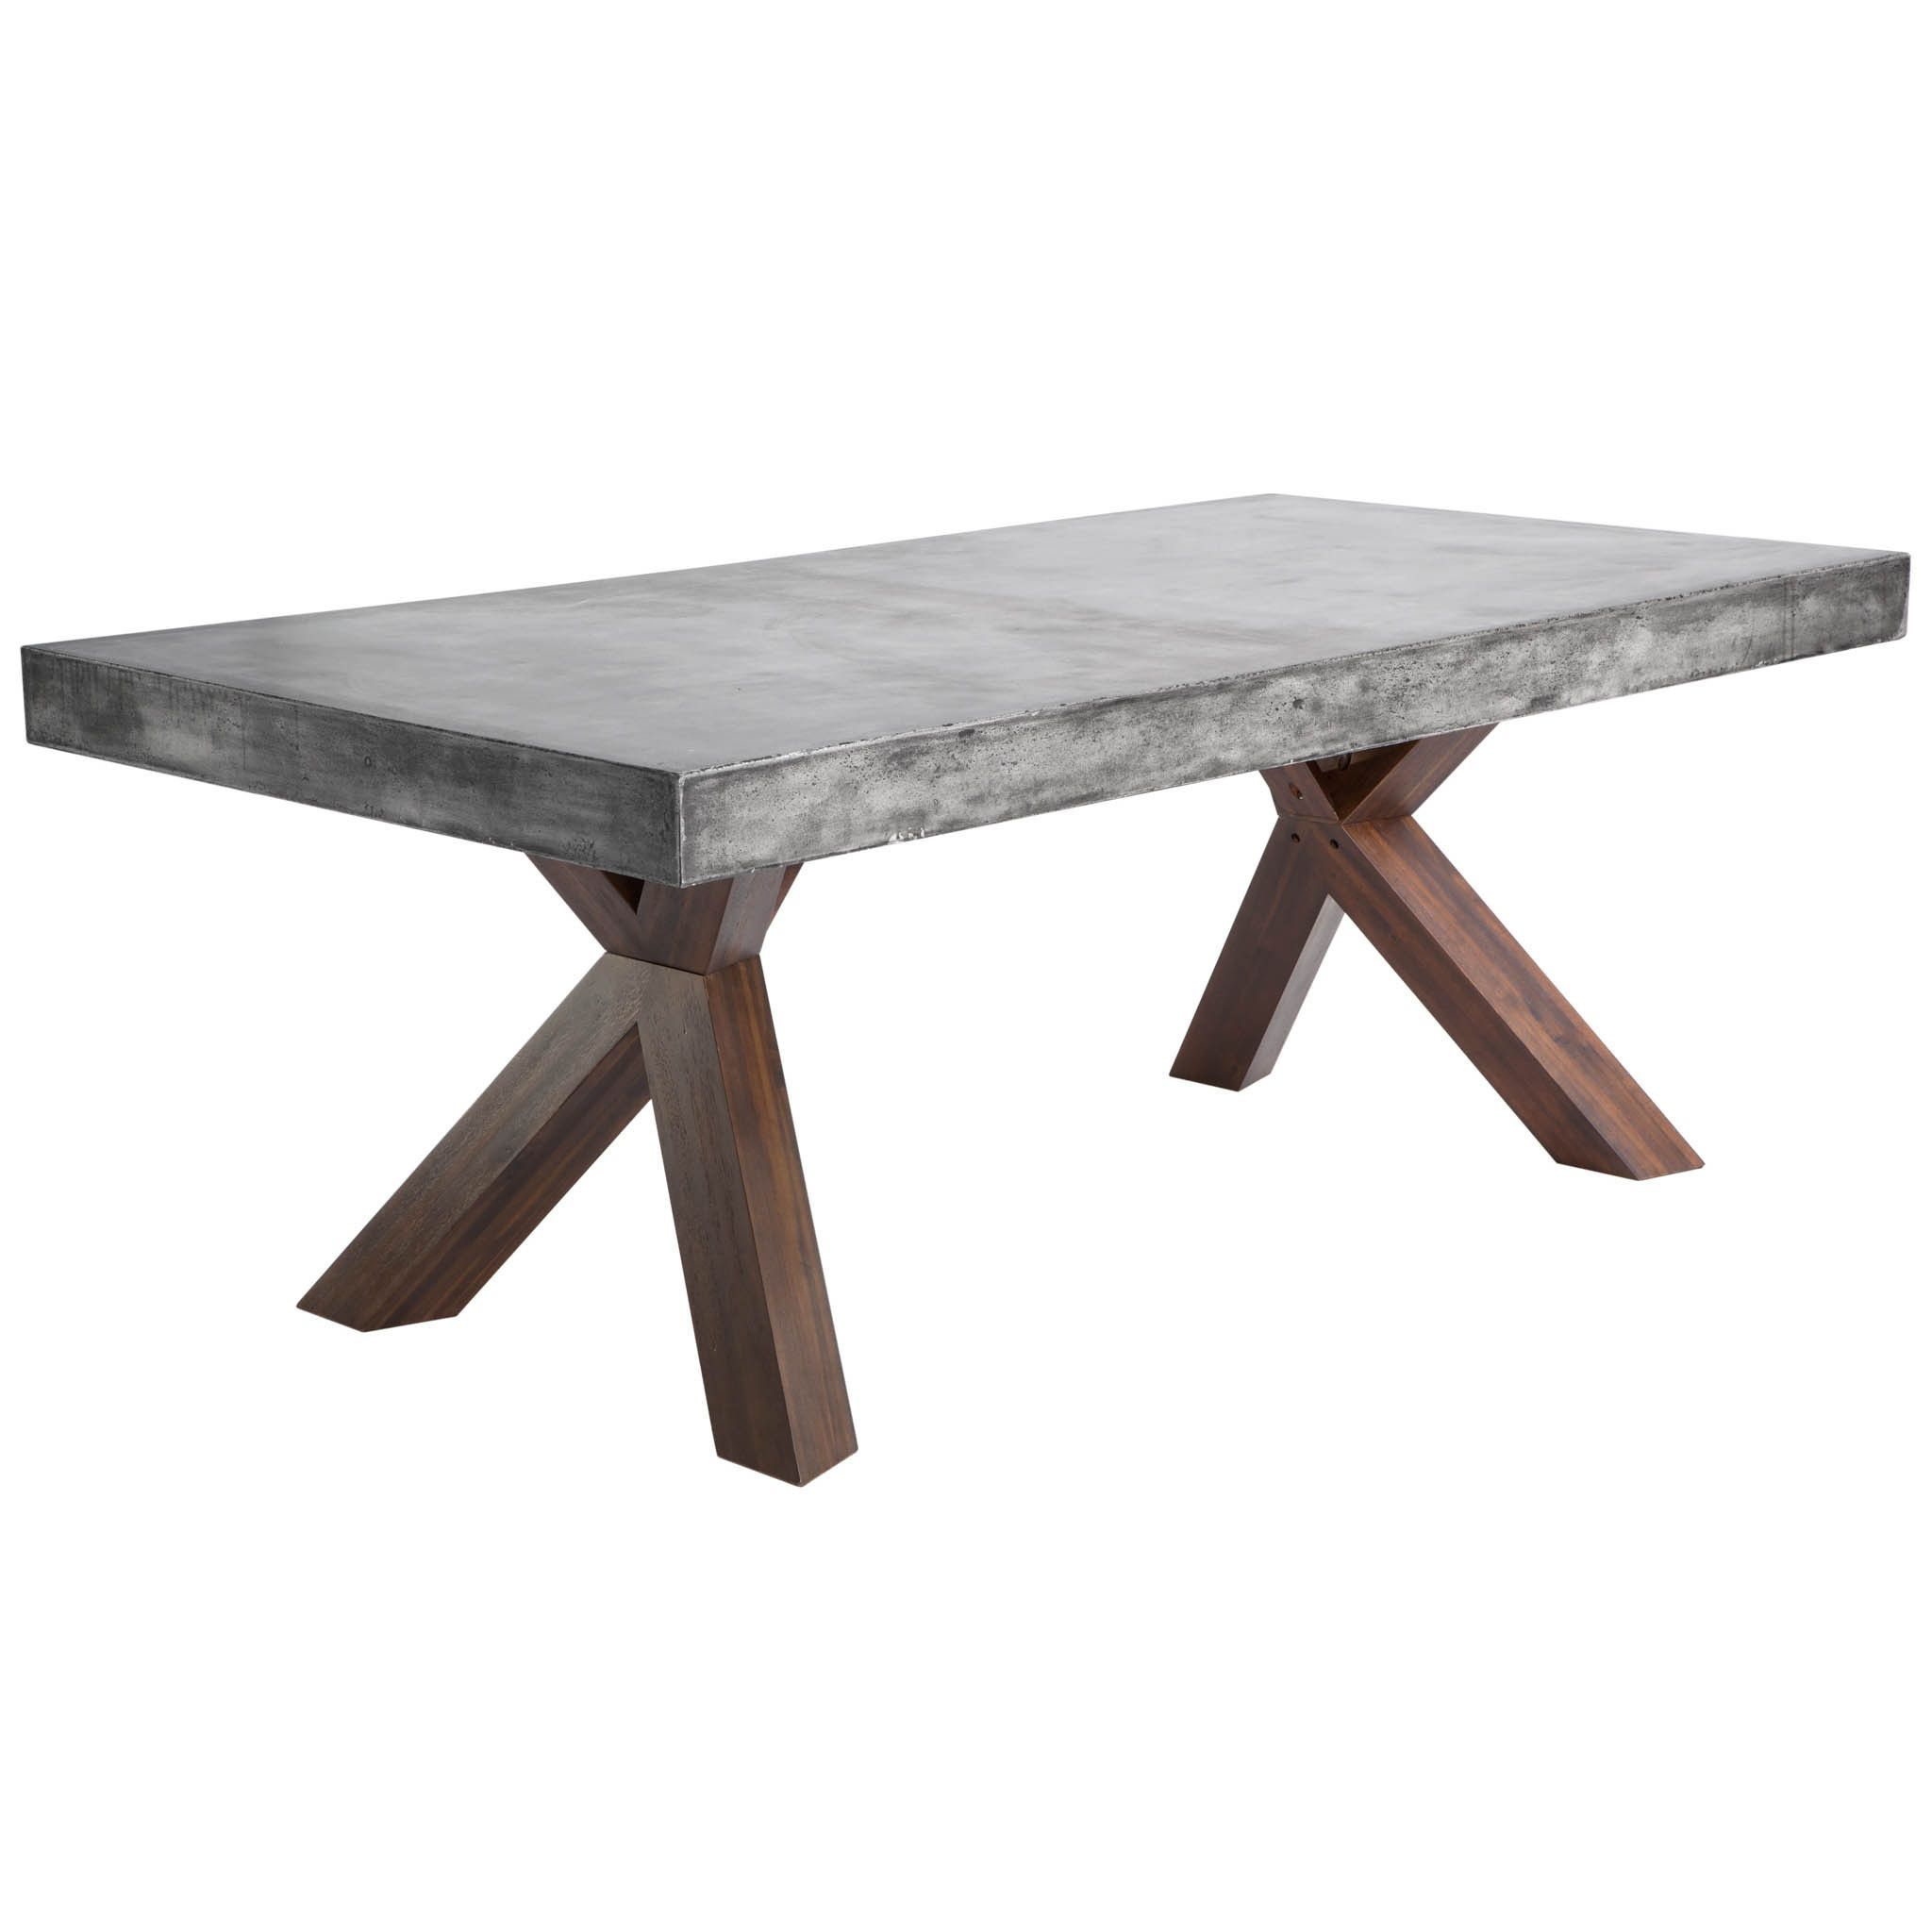 This remarkable rectangular dining table features a 10 cm concrete